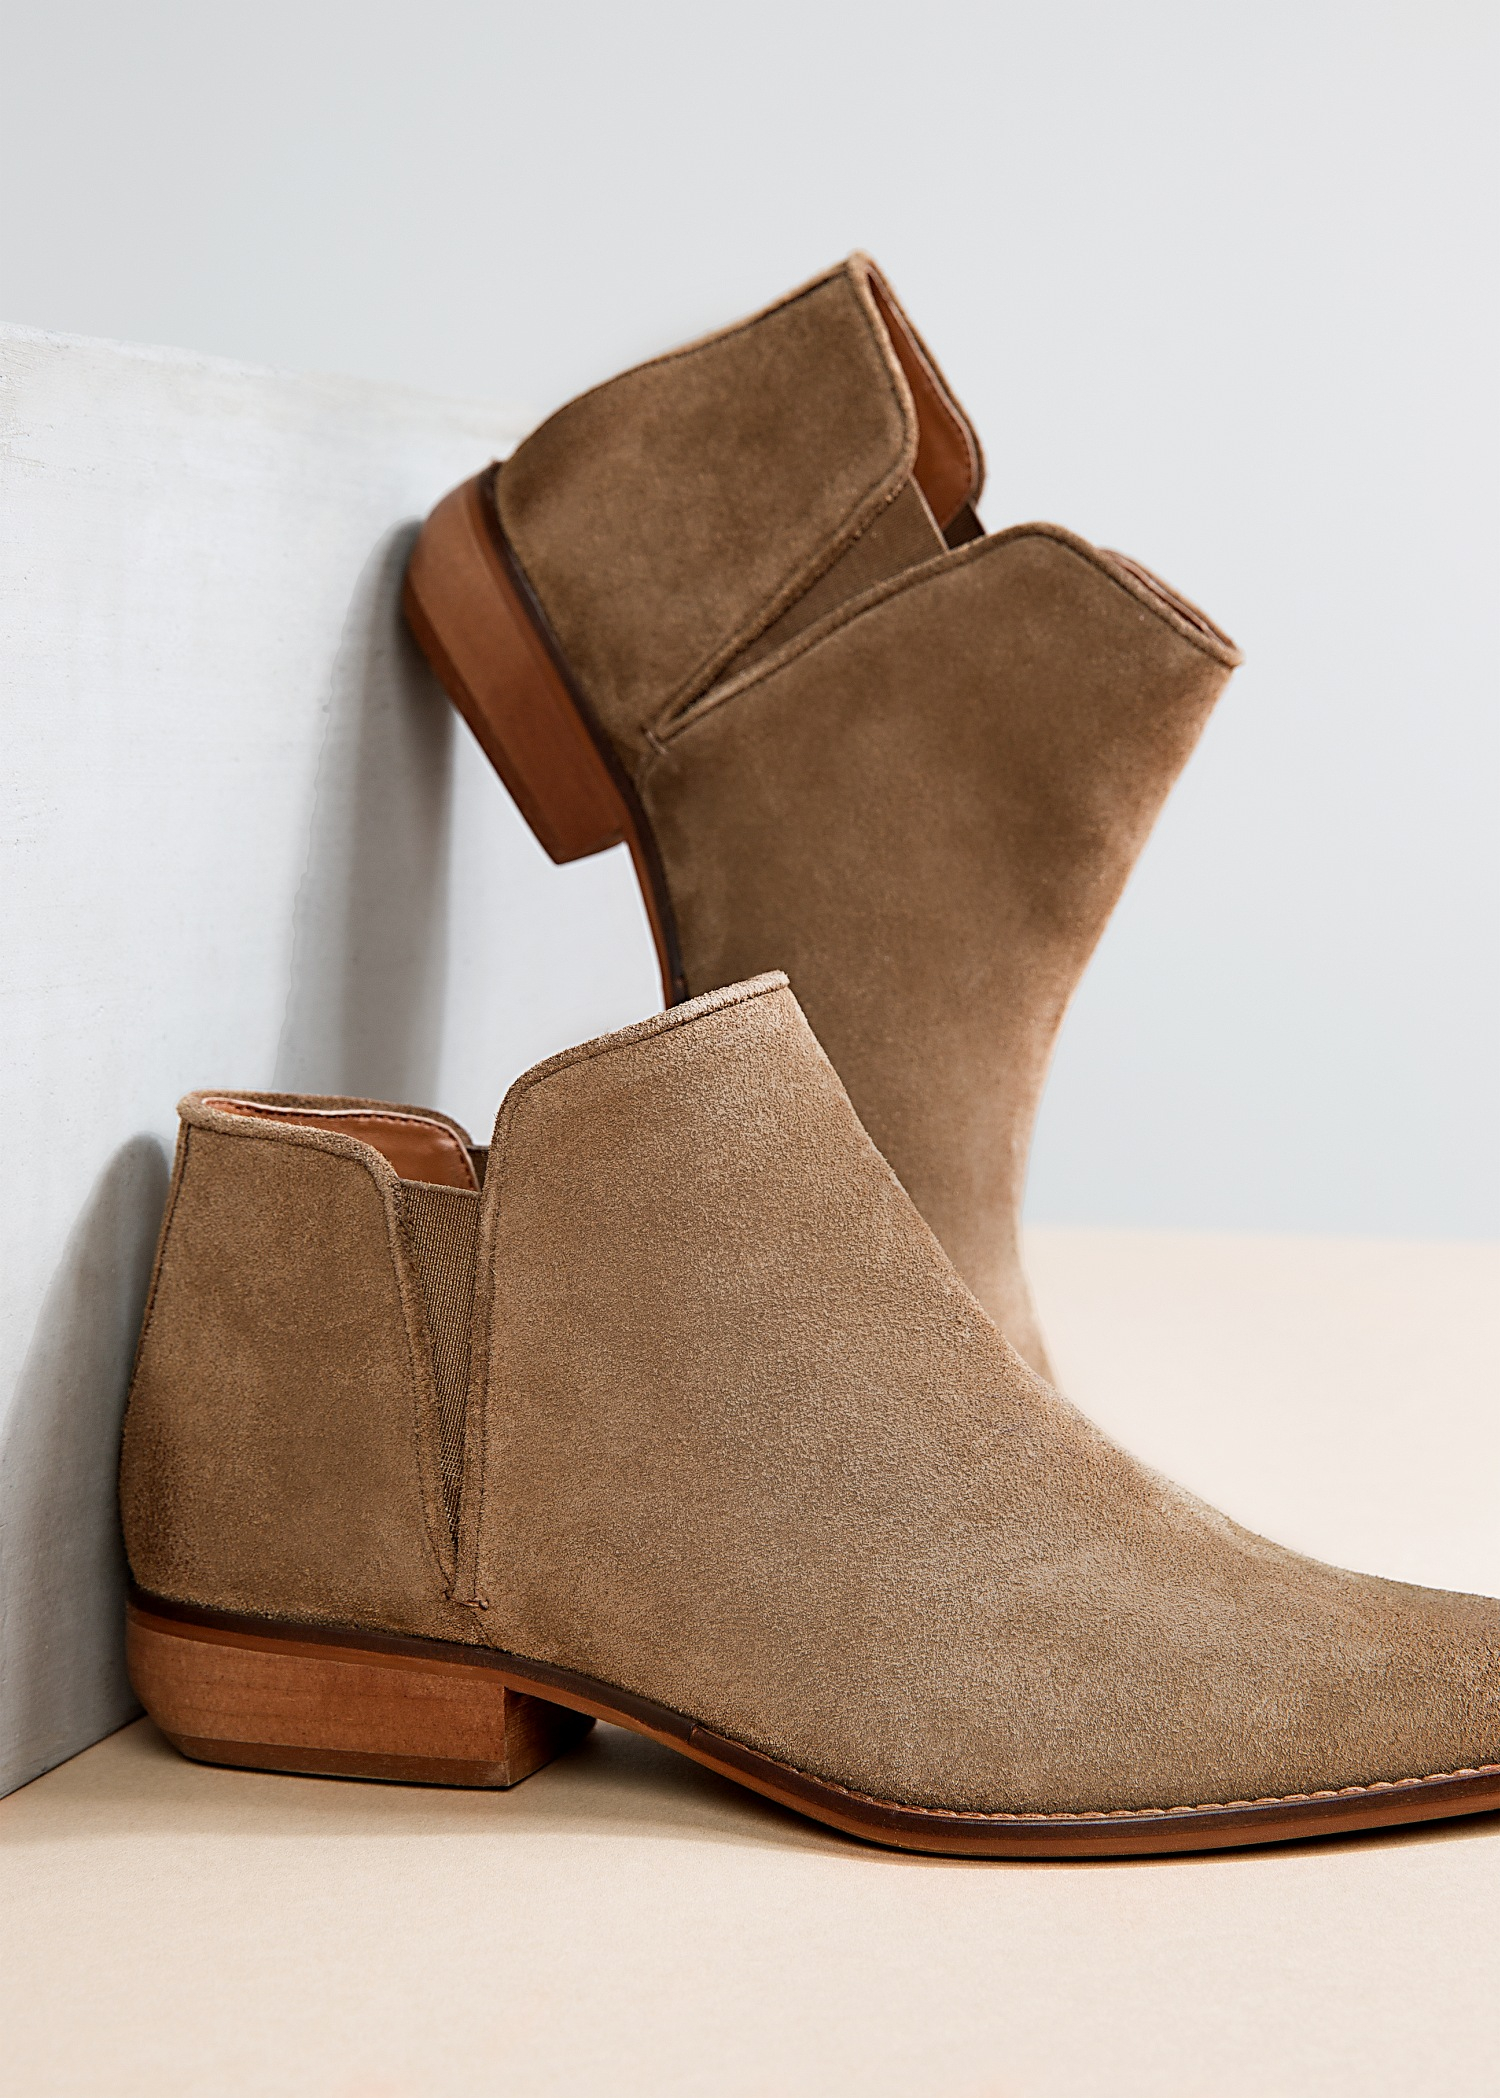 03f59f1cfc9 Mango Flat Suede Ankle Boots in Natural - Lyst